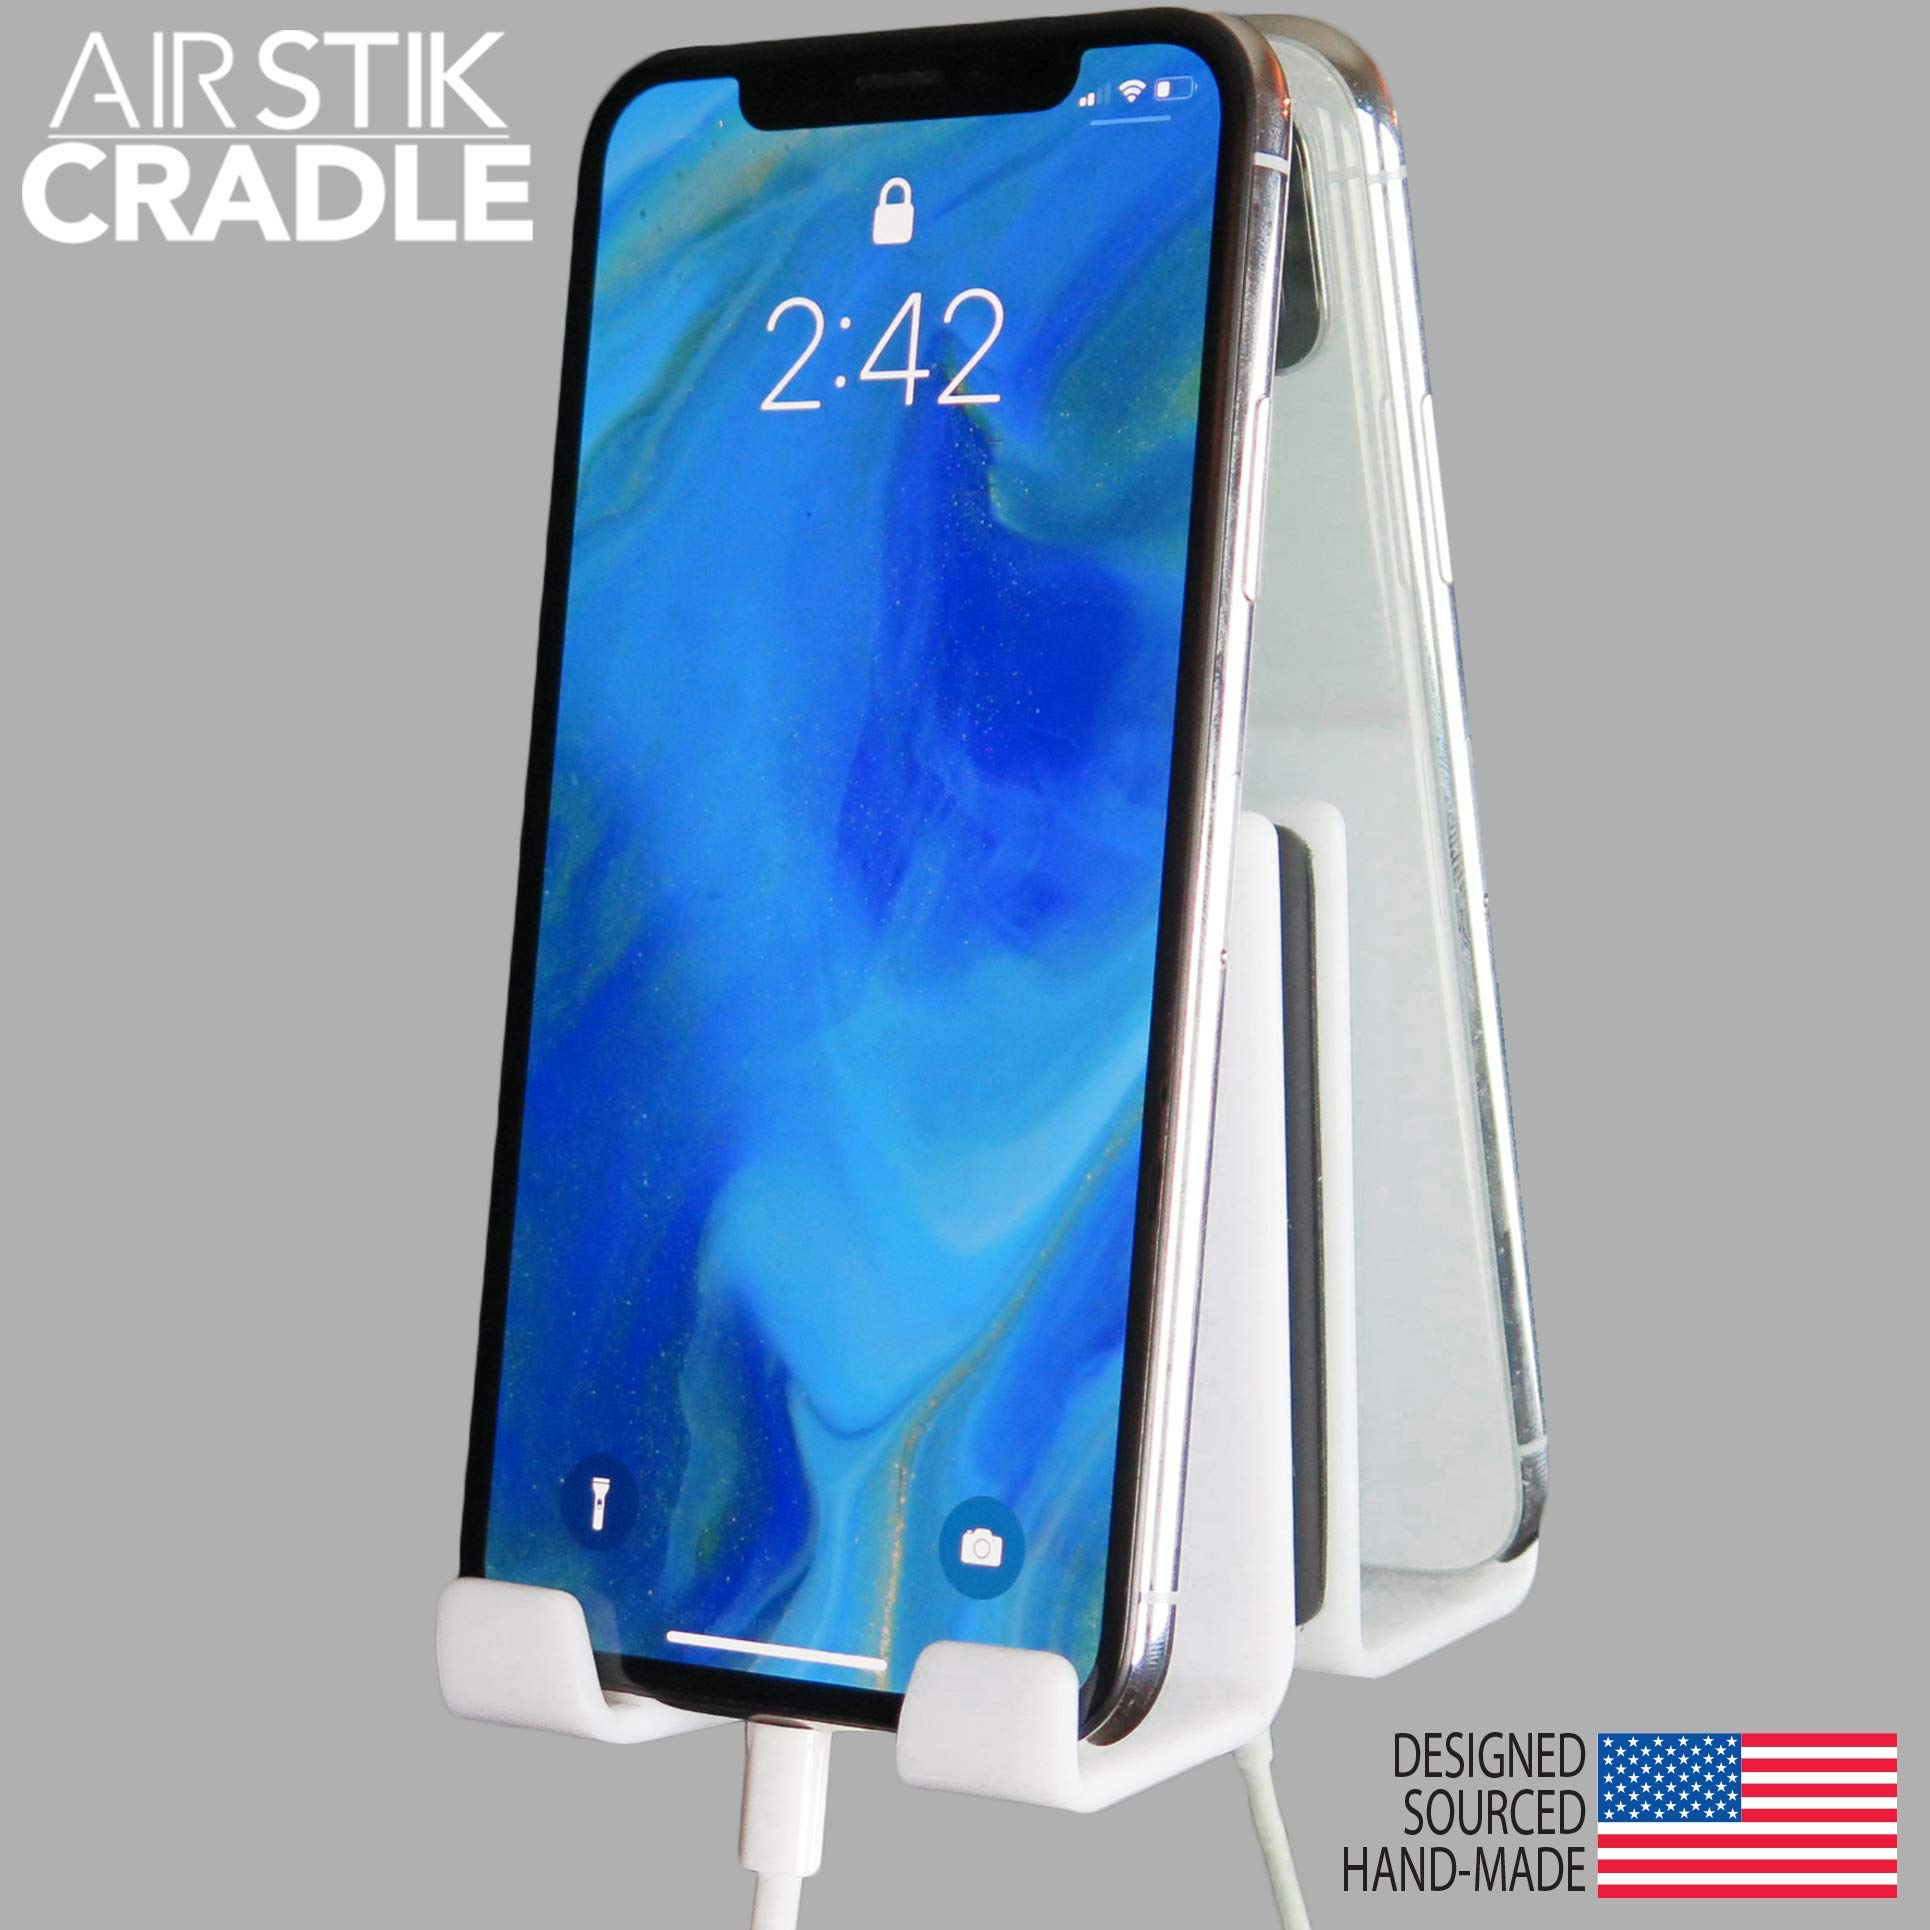 AIRSTIK Cradle for Any Phone Tablet Pad Holder Selfie Caddy Mount Shelf Bathroom Shower Glass Mirror Window Wall Universal Reusable Waterproof Compatible with Any iPhone or iPad Made in USA (White) by AIRSTIK